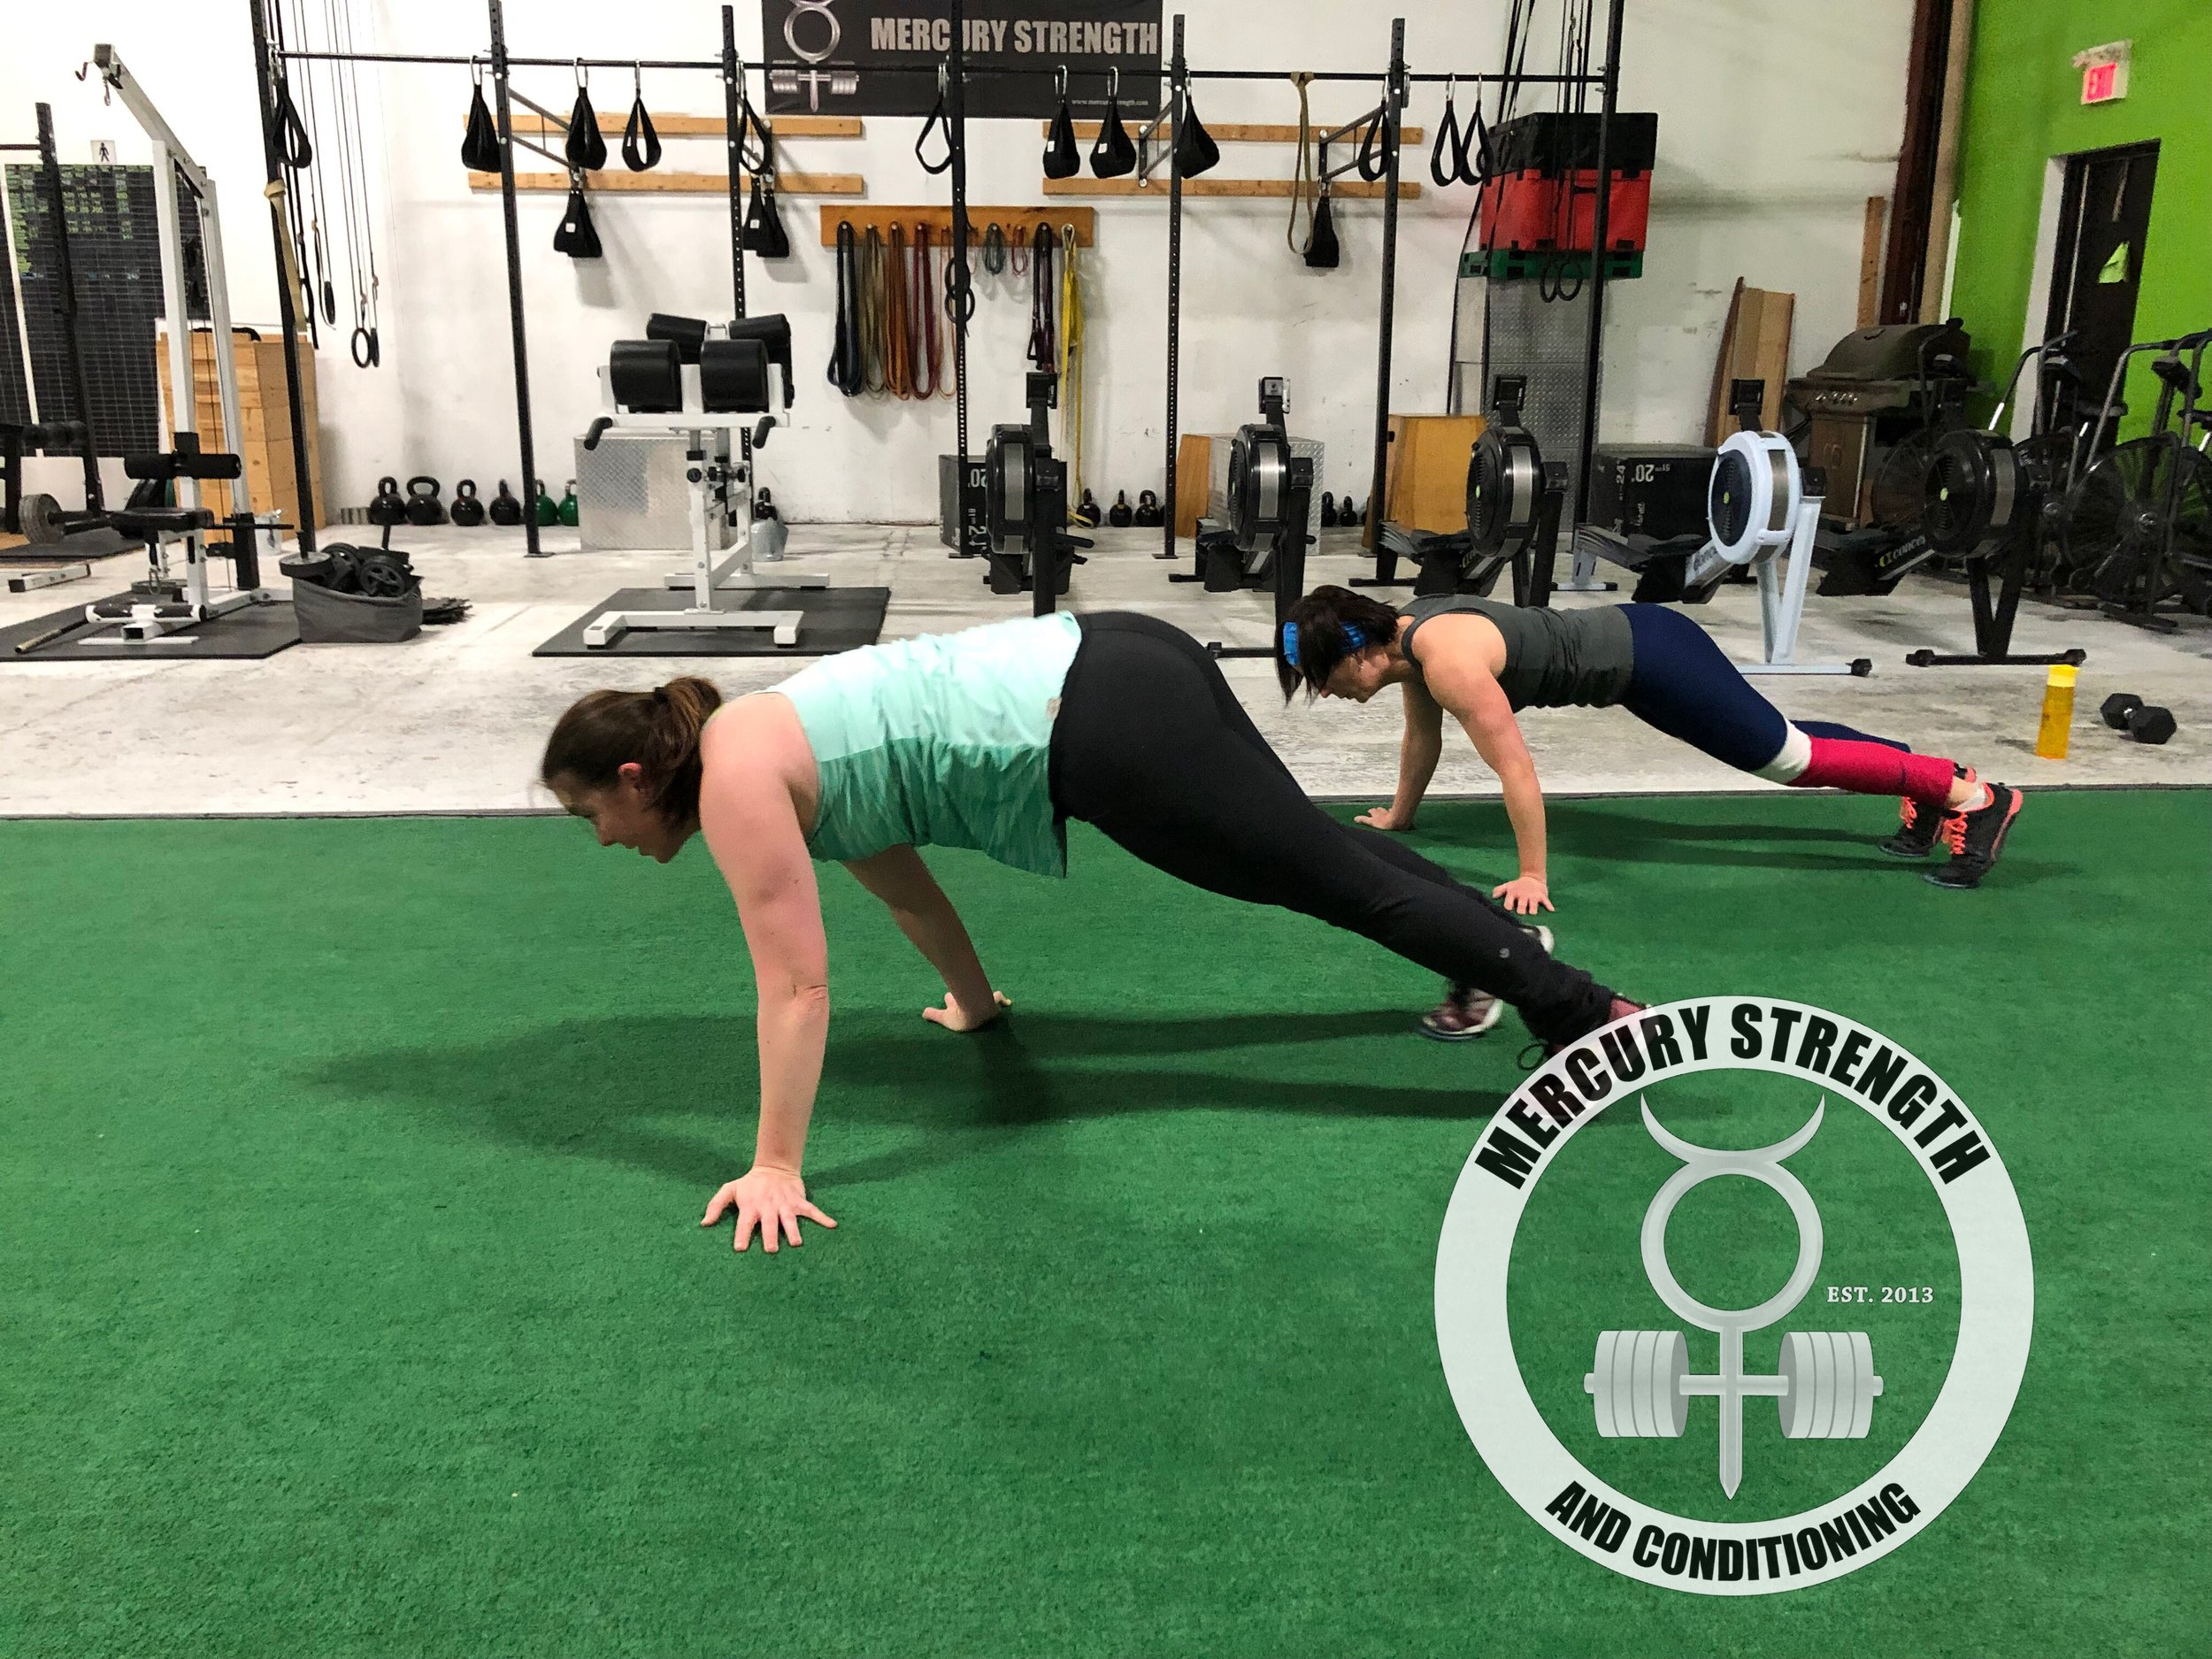 Katherine and Shawna with some plank walks